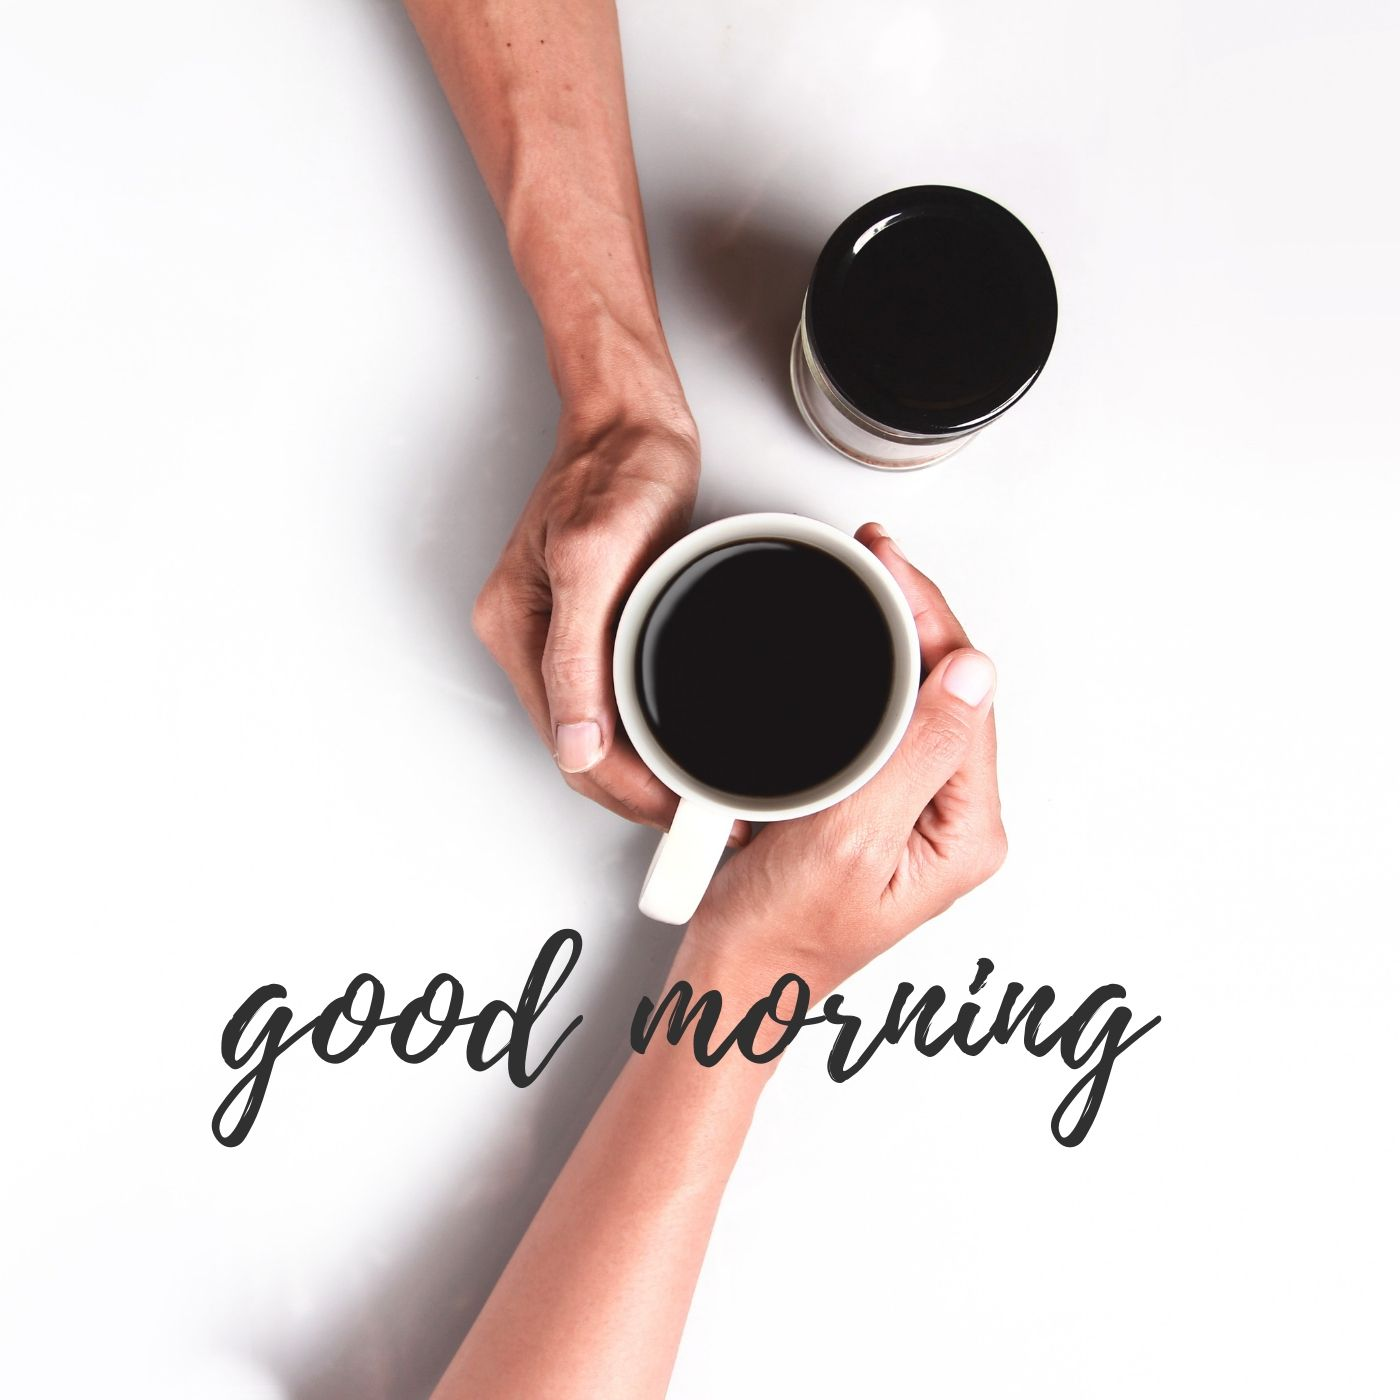 Good Morning Black Coffee Image full HD free download.